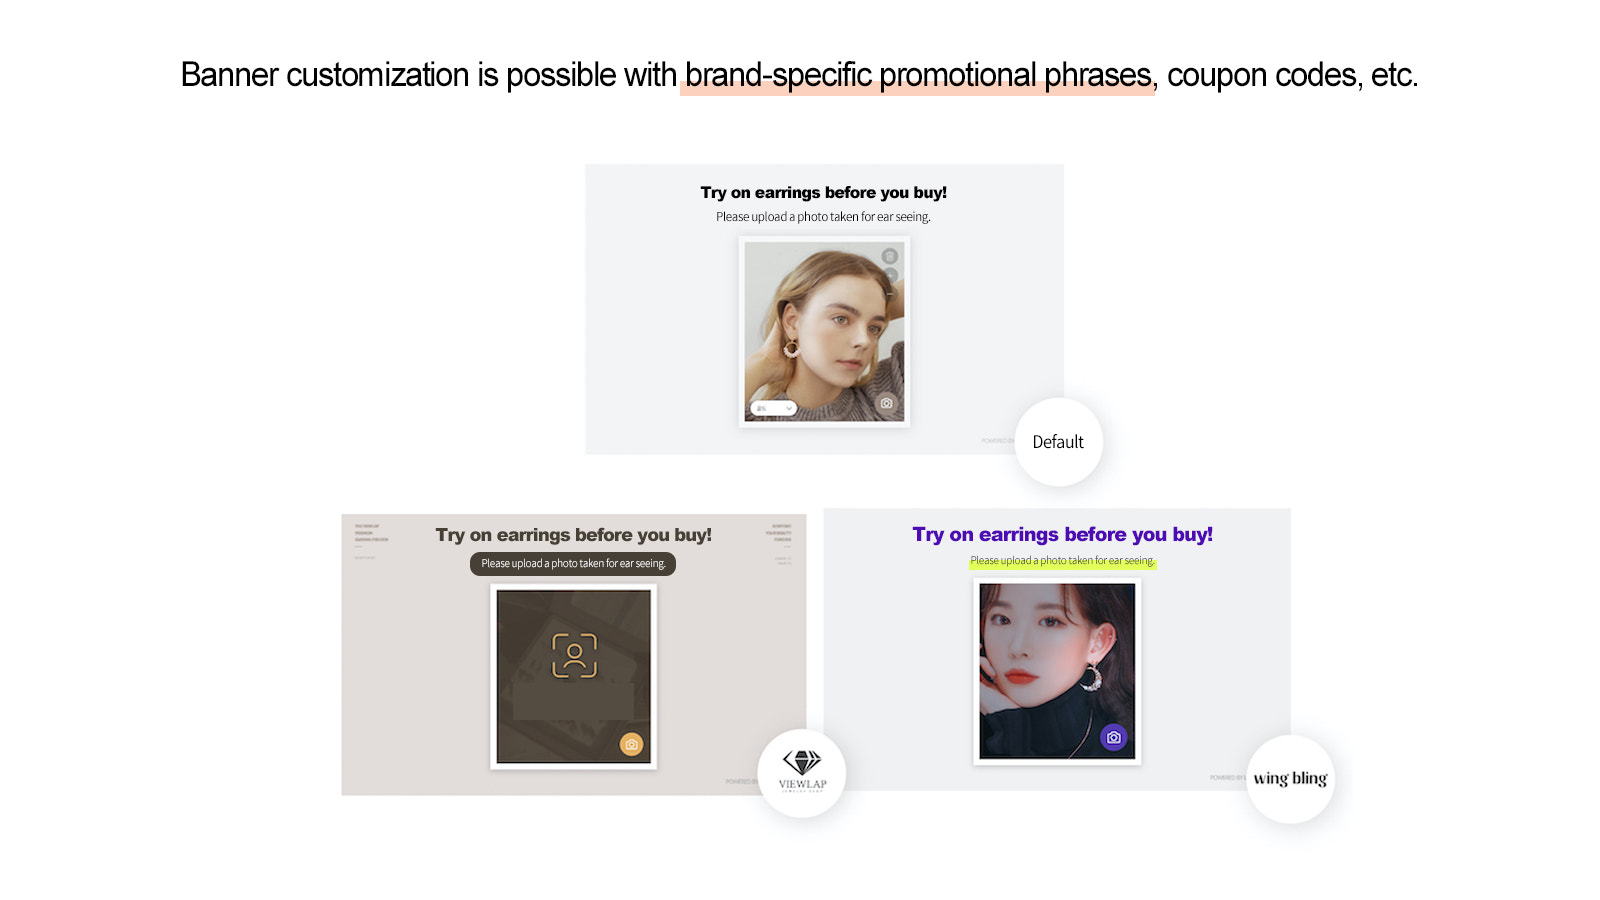 Banner customization is possible with coupon codes, etc.